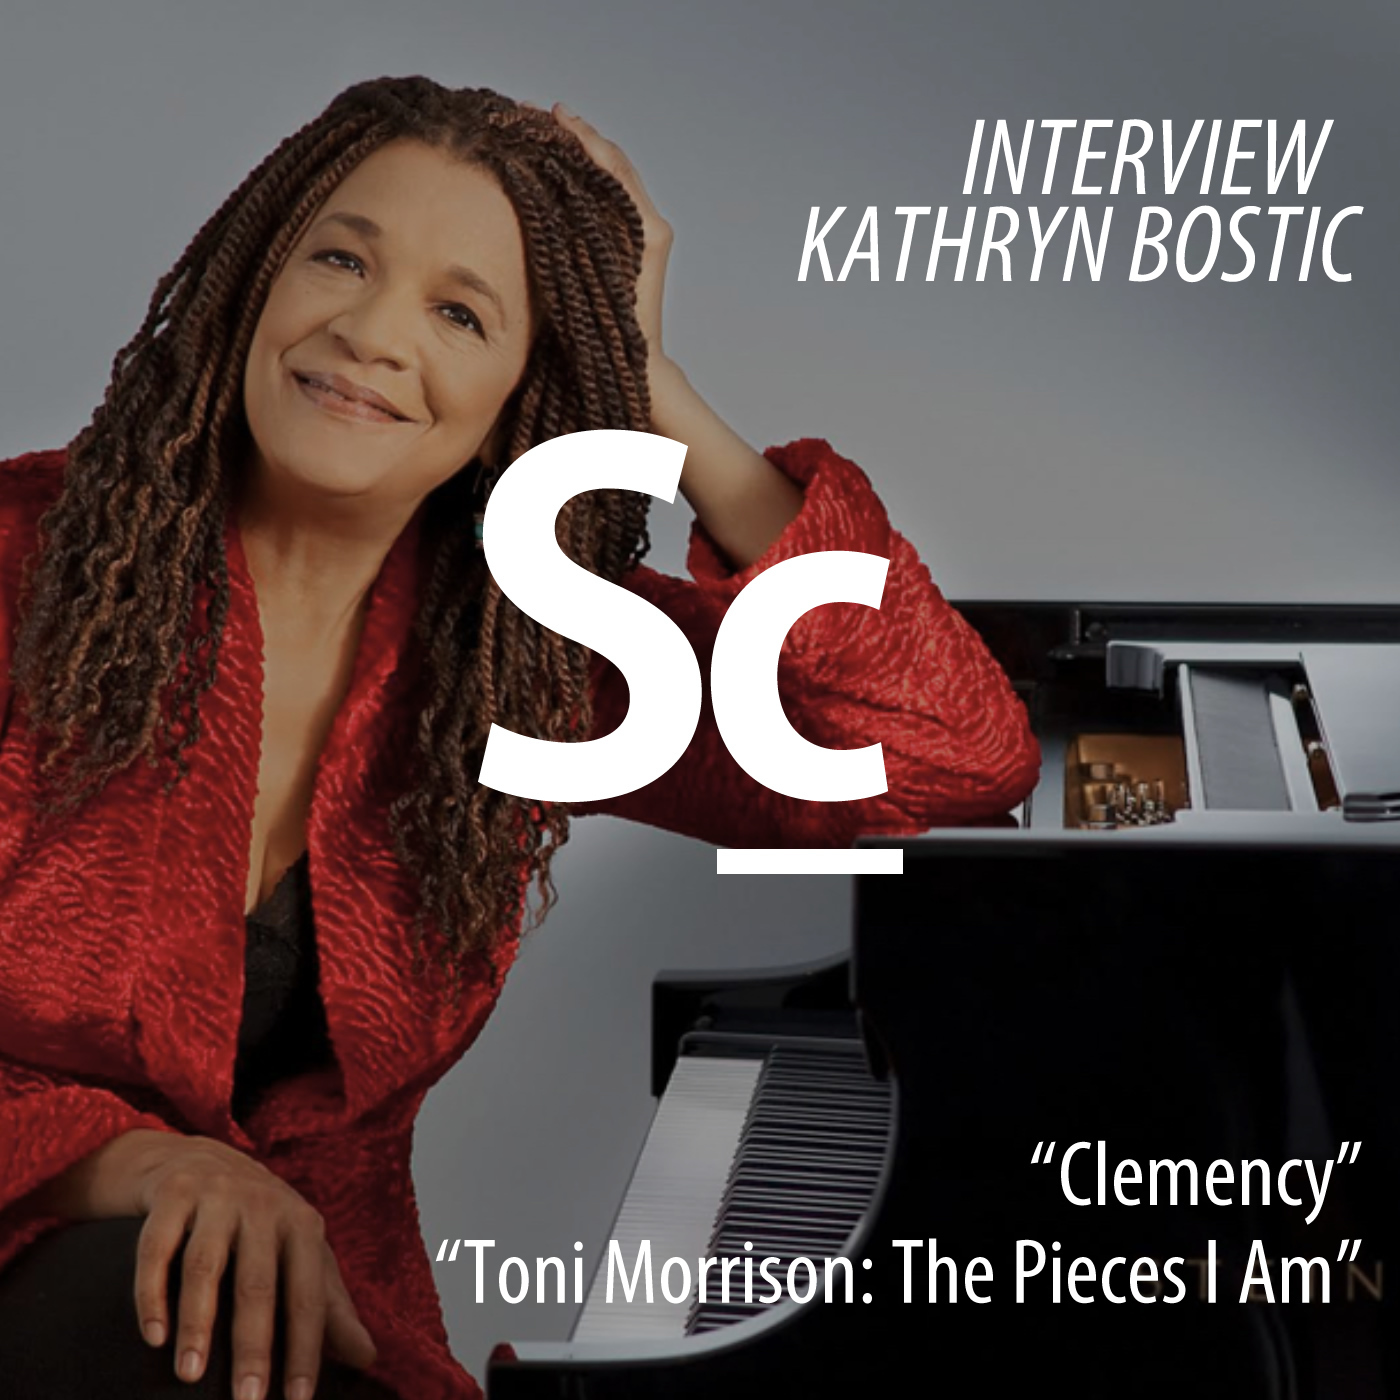 Interview: Kathryn Bostic [Clemency, Toni Morrison: The Pieces I Am] (Ep. 132)